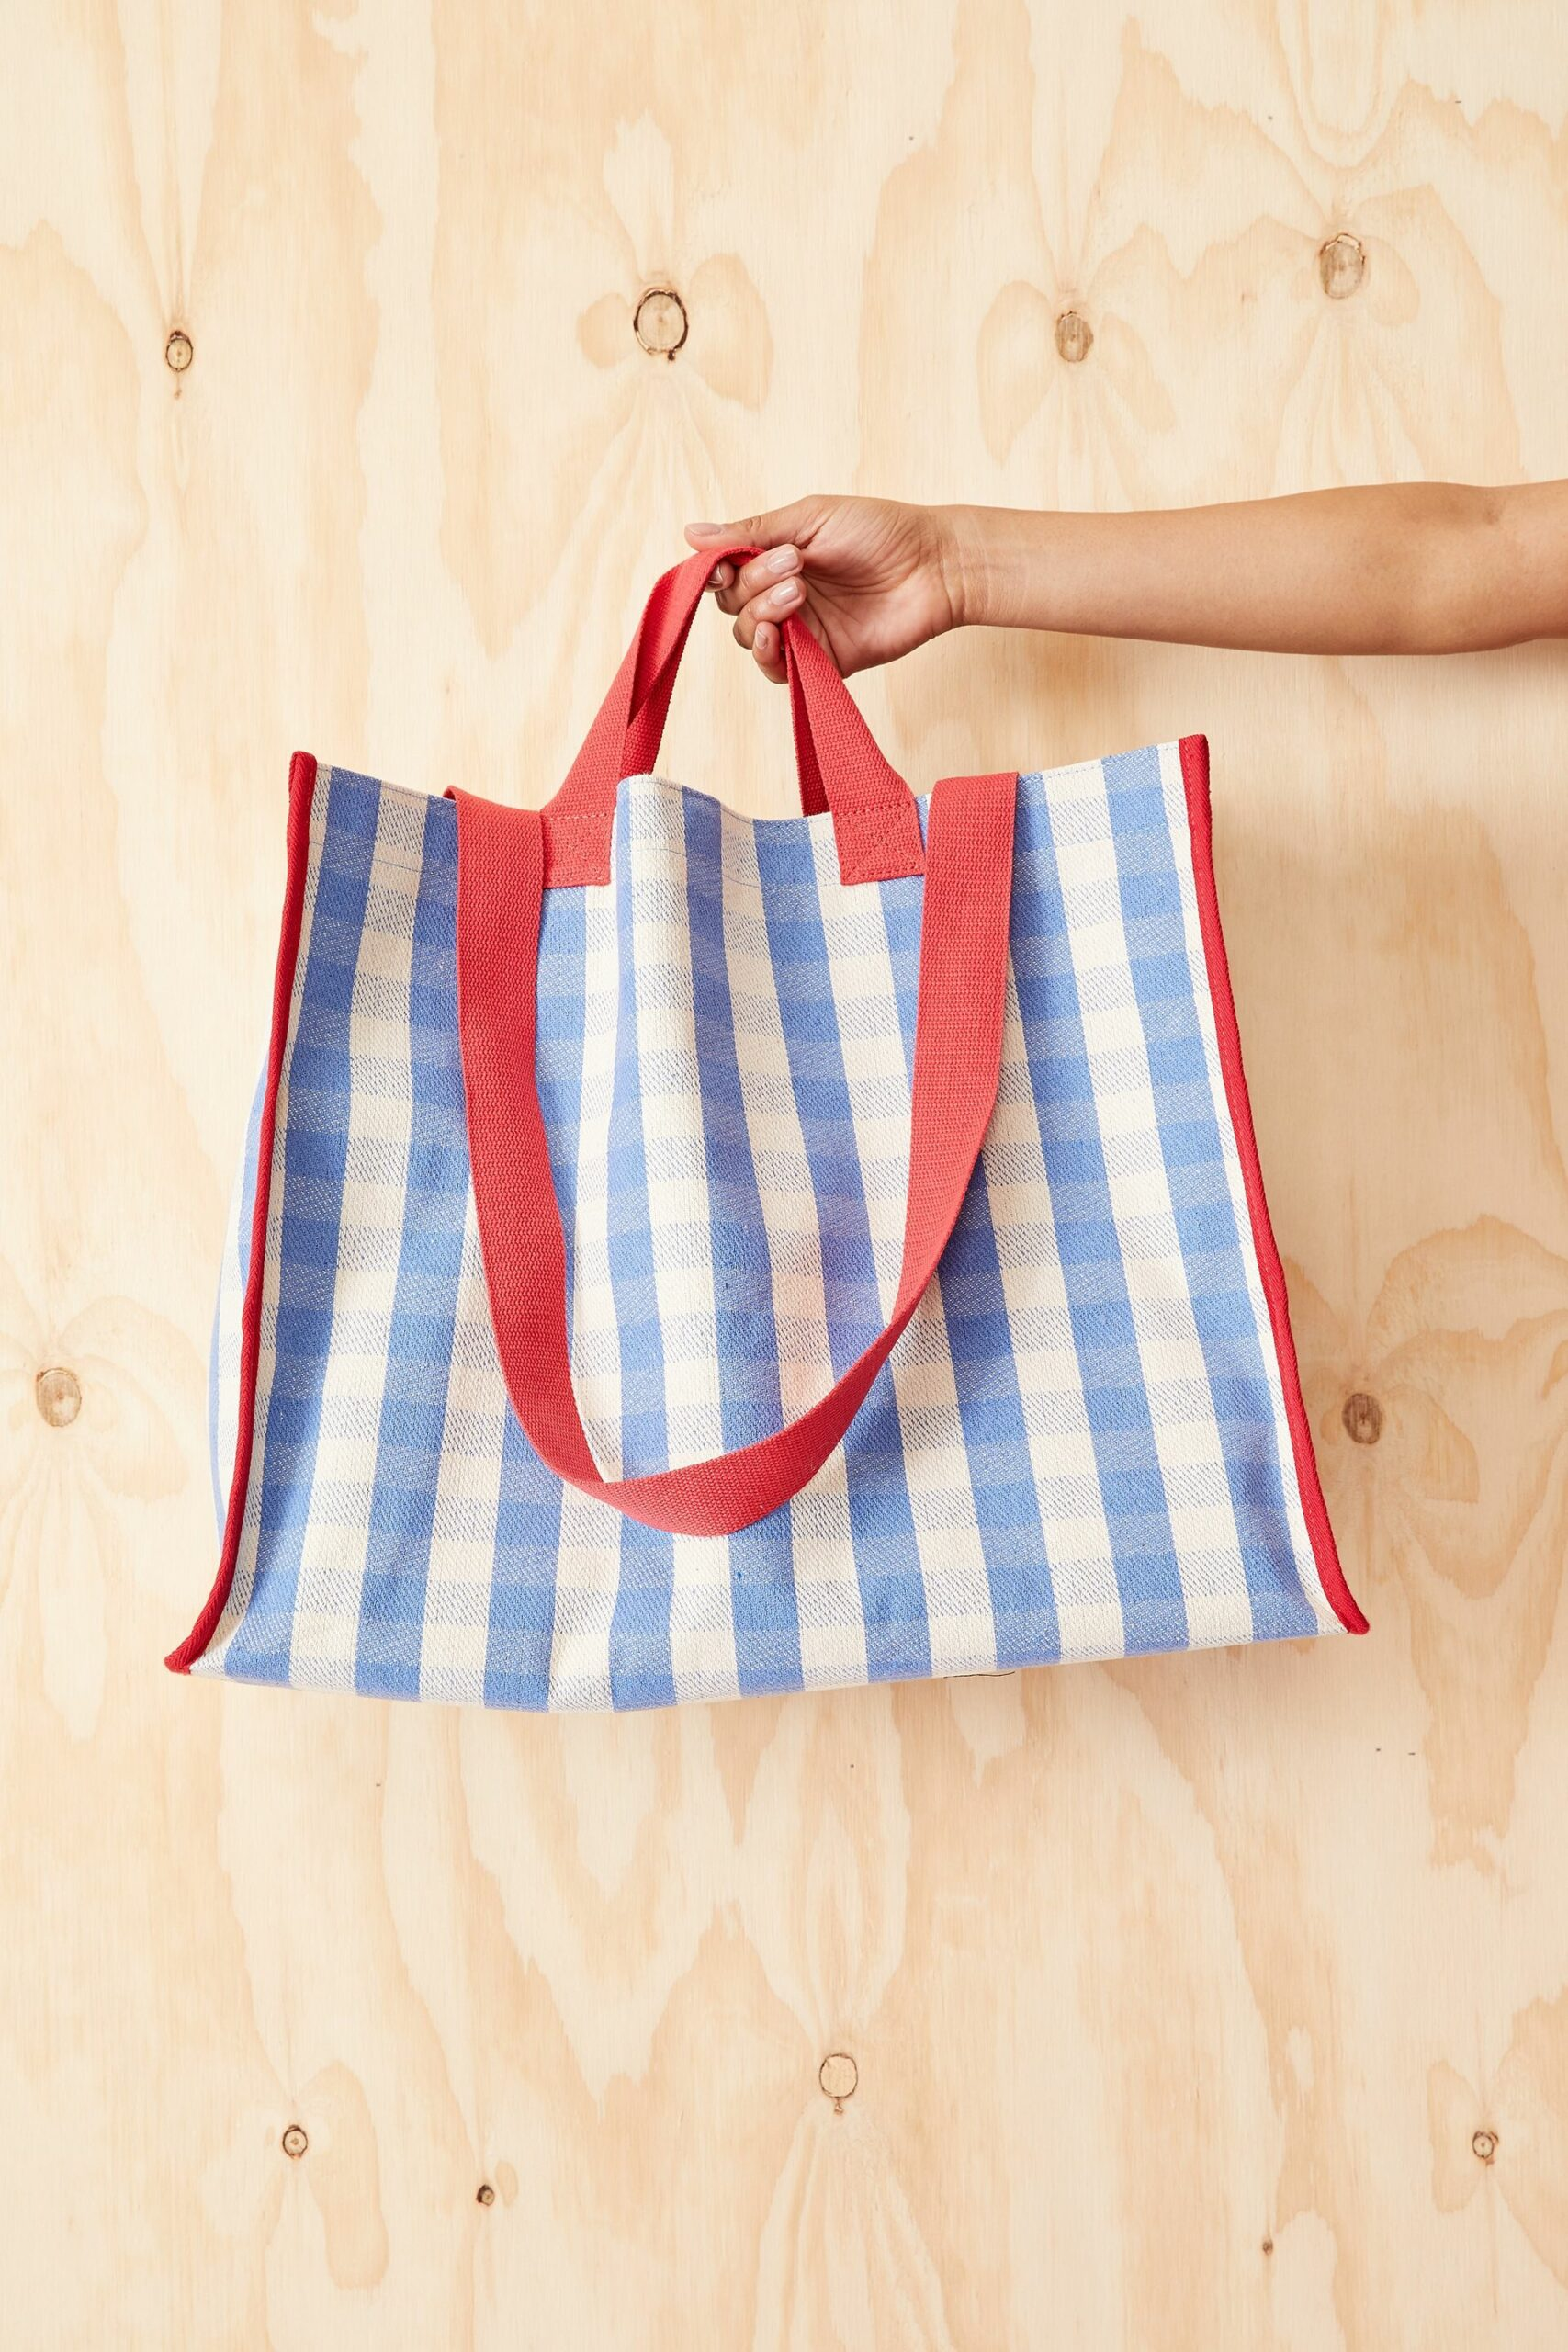 Pale blue gingham tote bag with red trim and red handles.